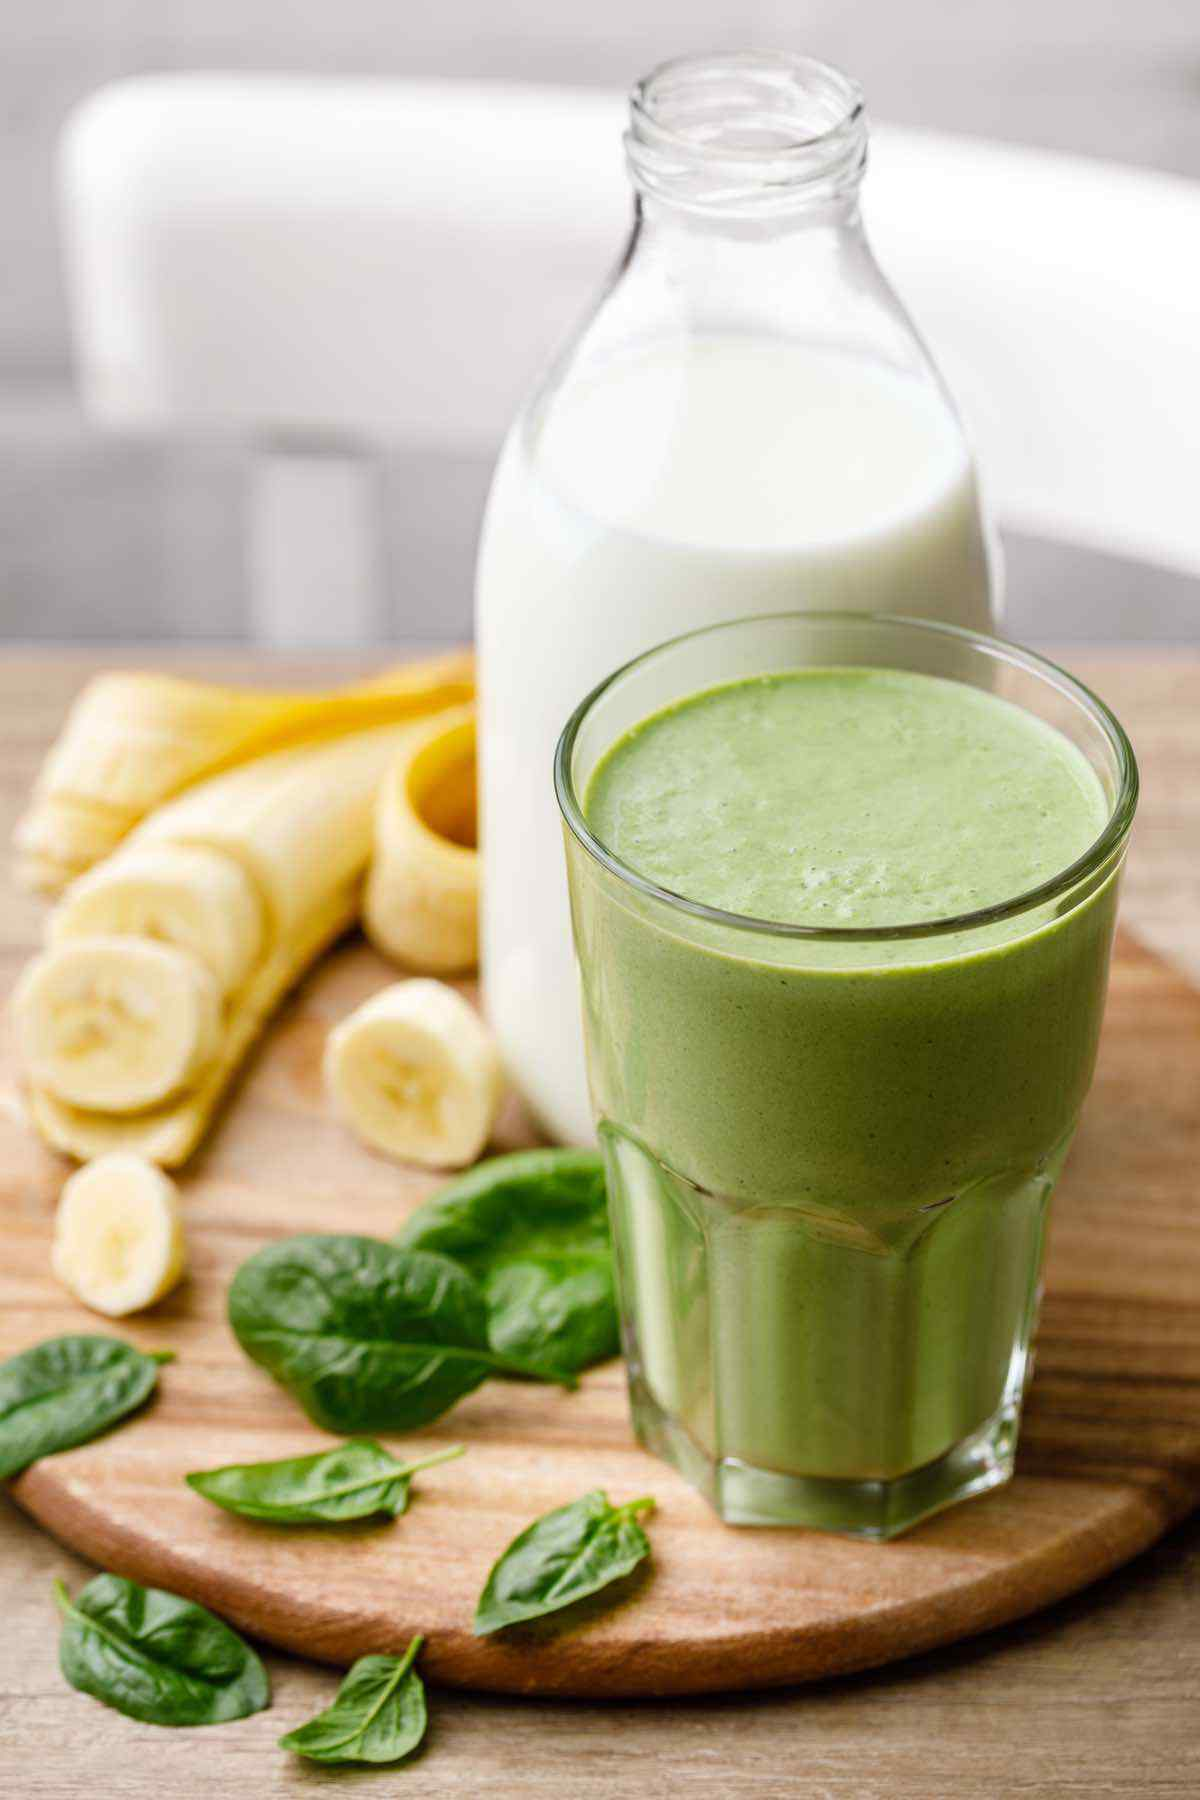 Easy 5-Minute Spinach Banana Smoothie